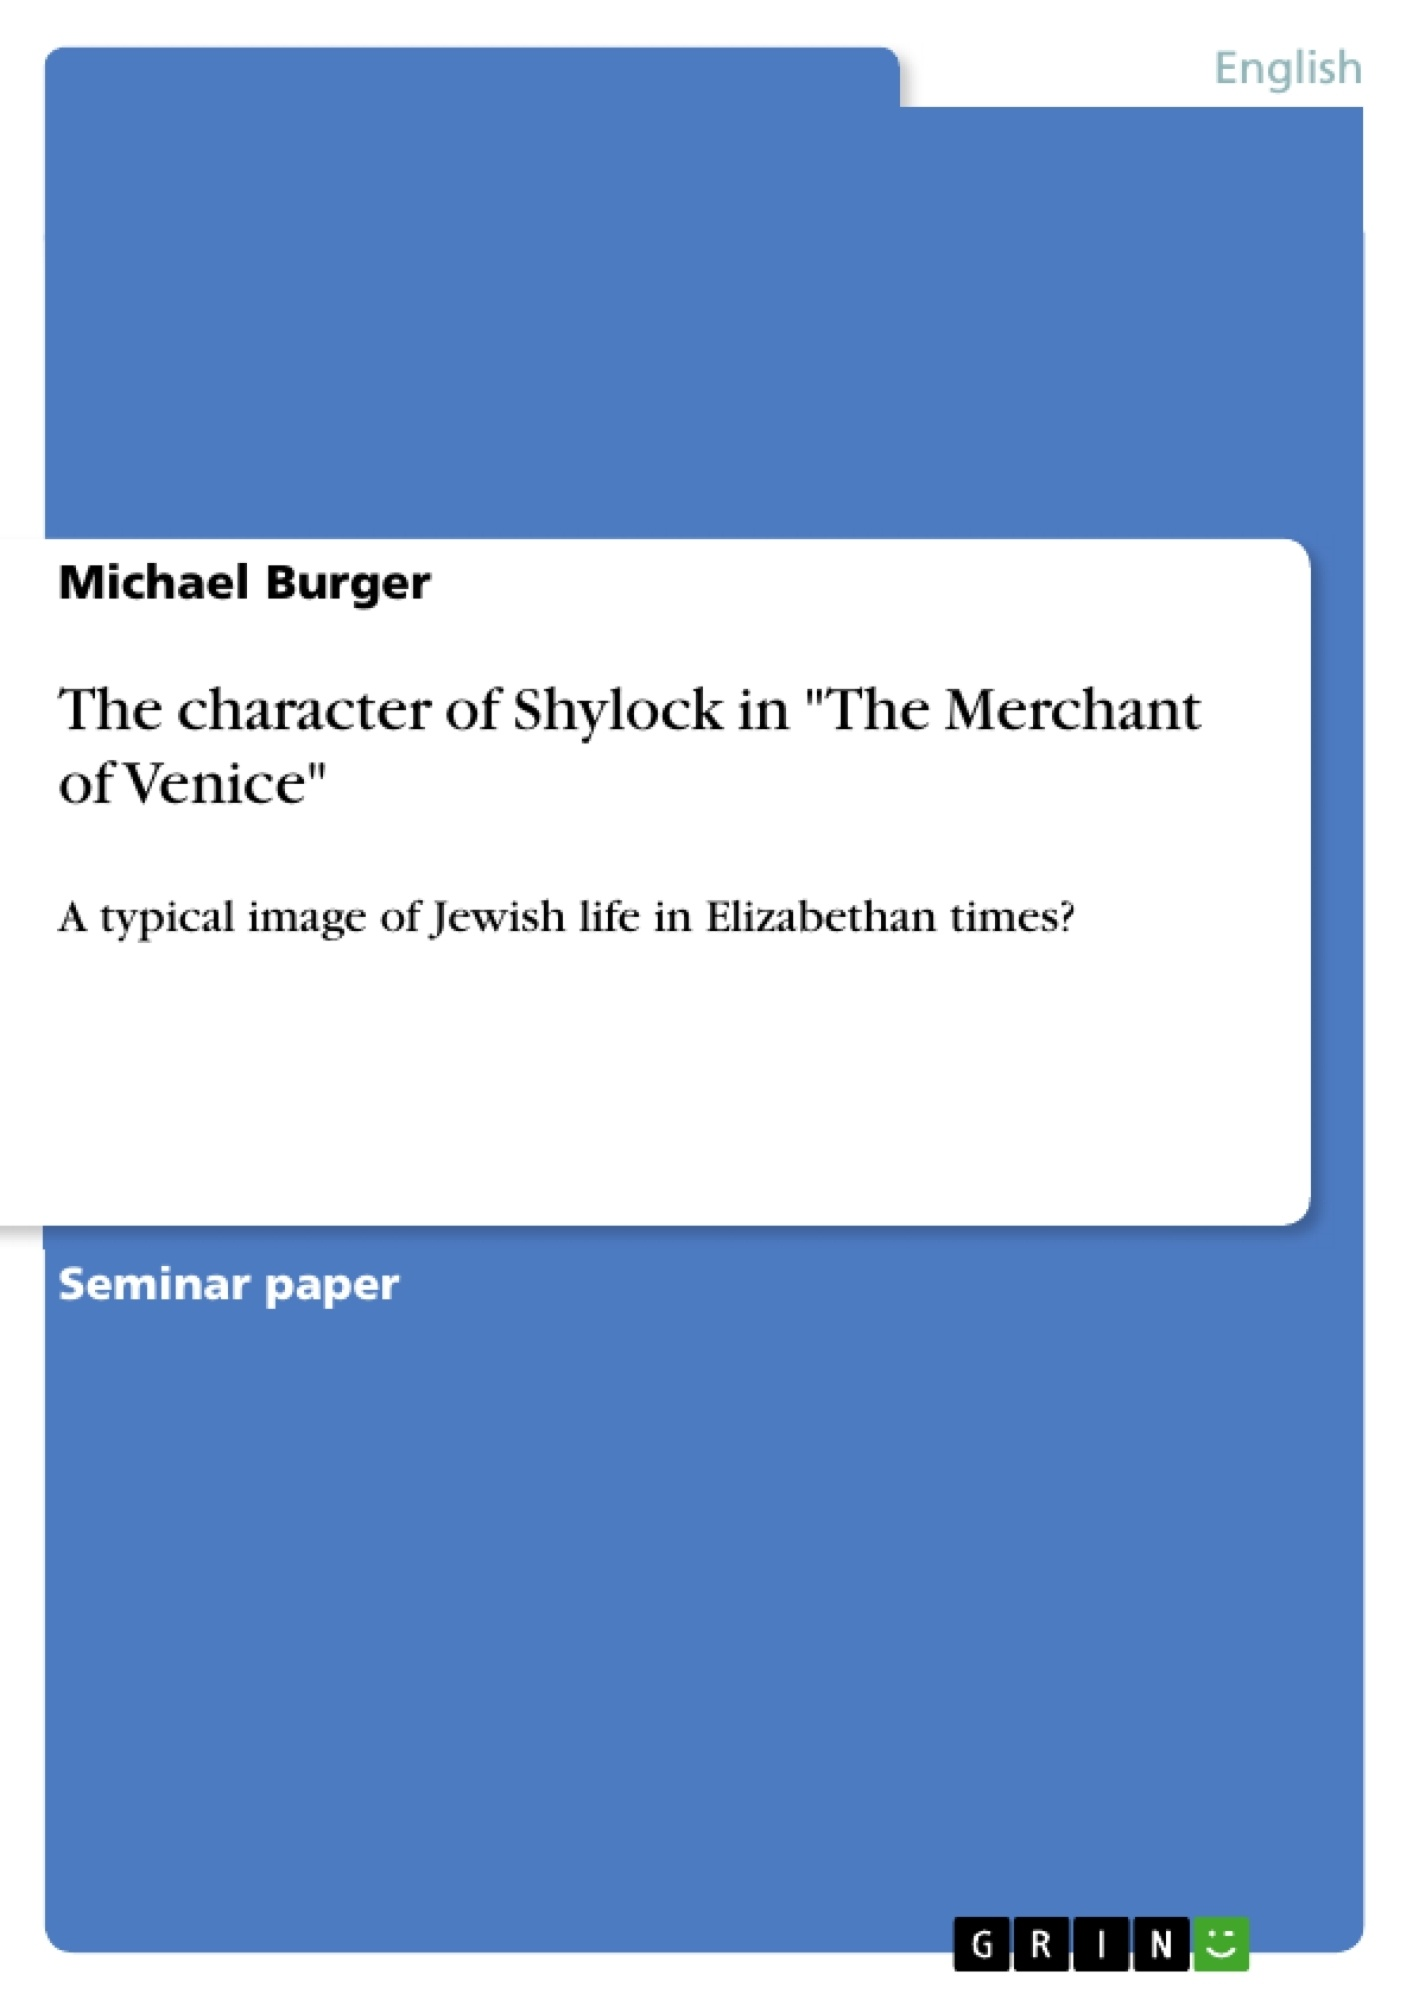 the character of shylock in the merchant of venice publish upload your own papers earn money and win an iphone 7